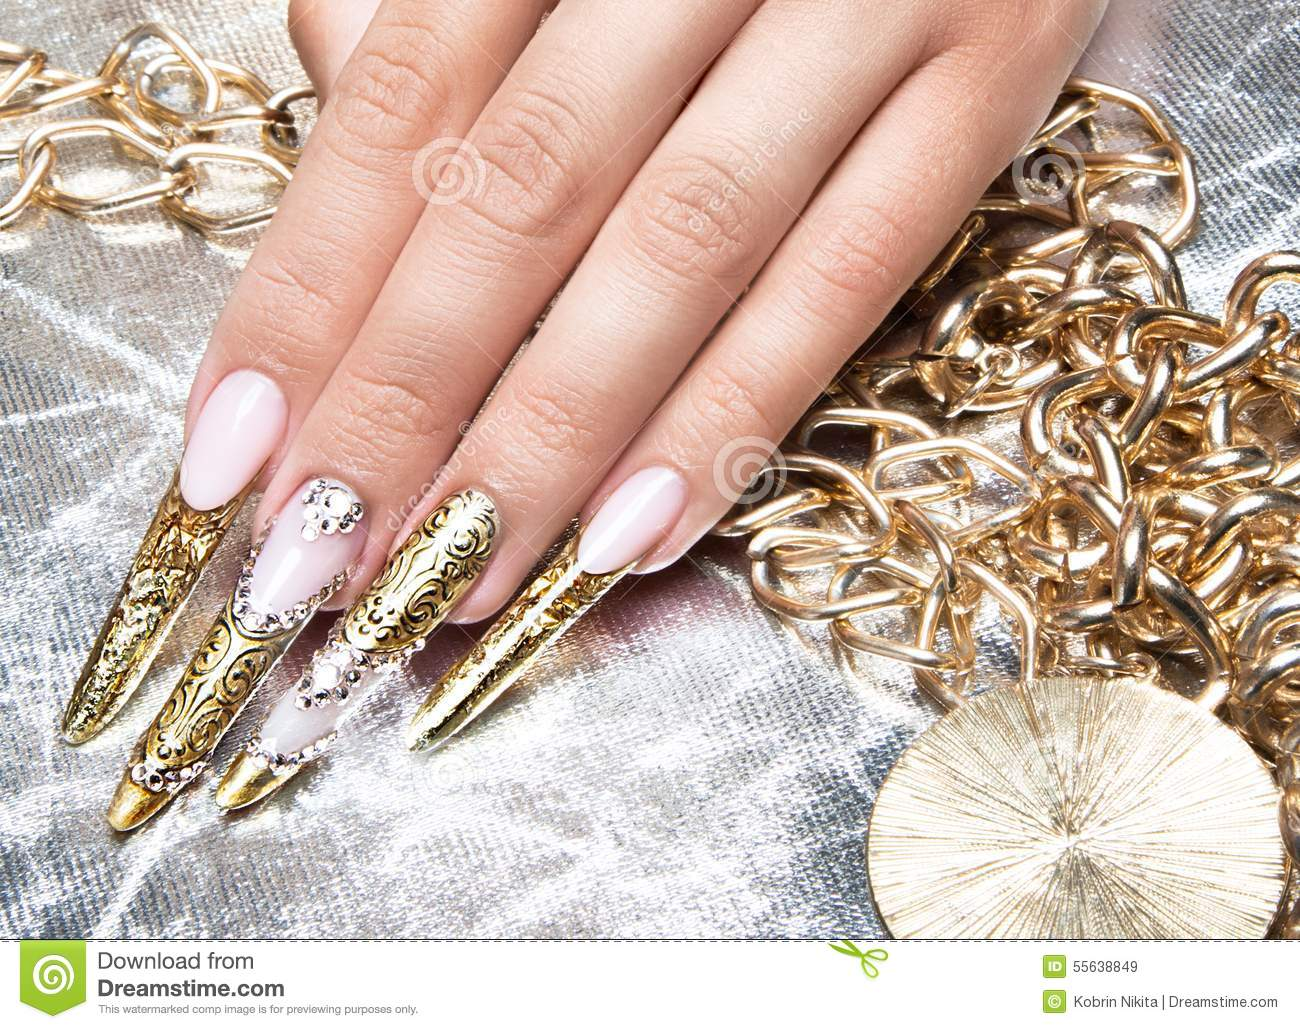 Pretty nails with rhinestones